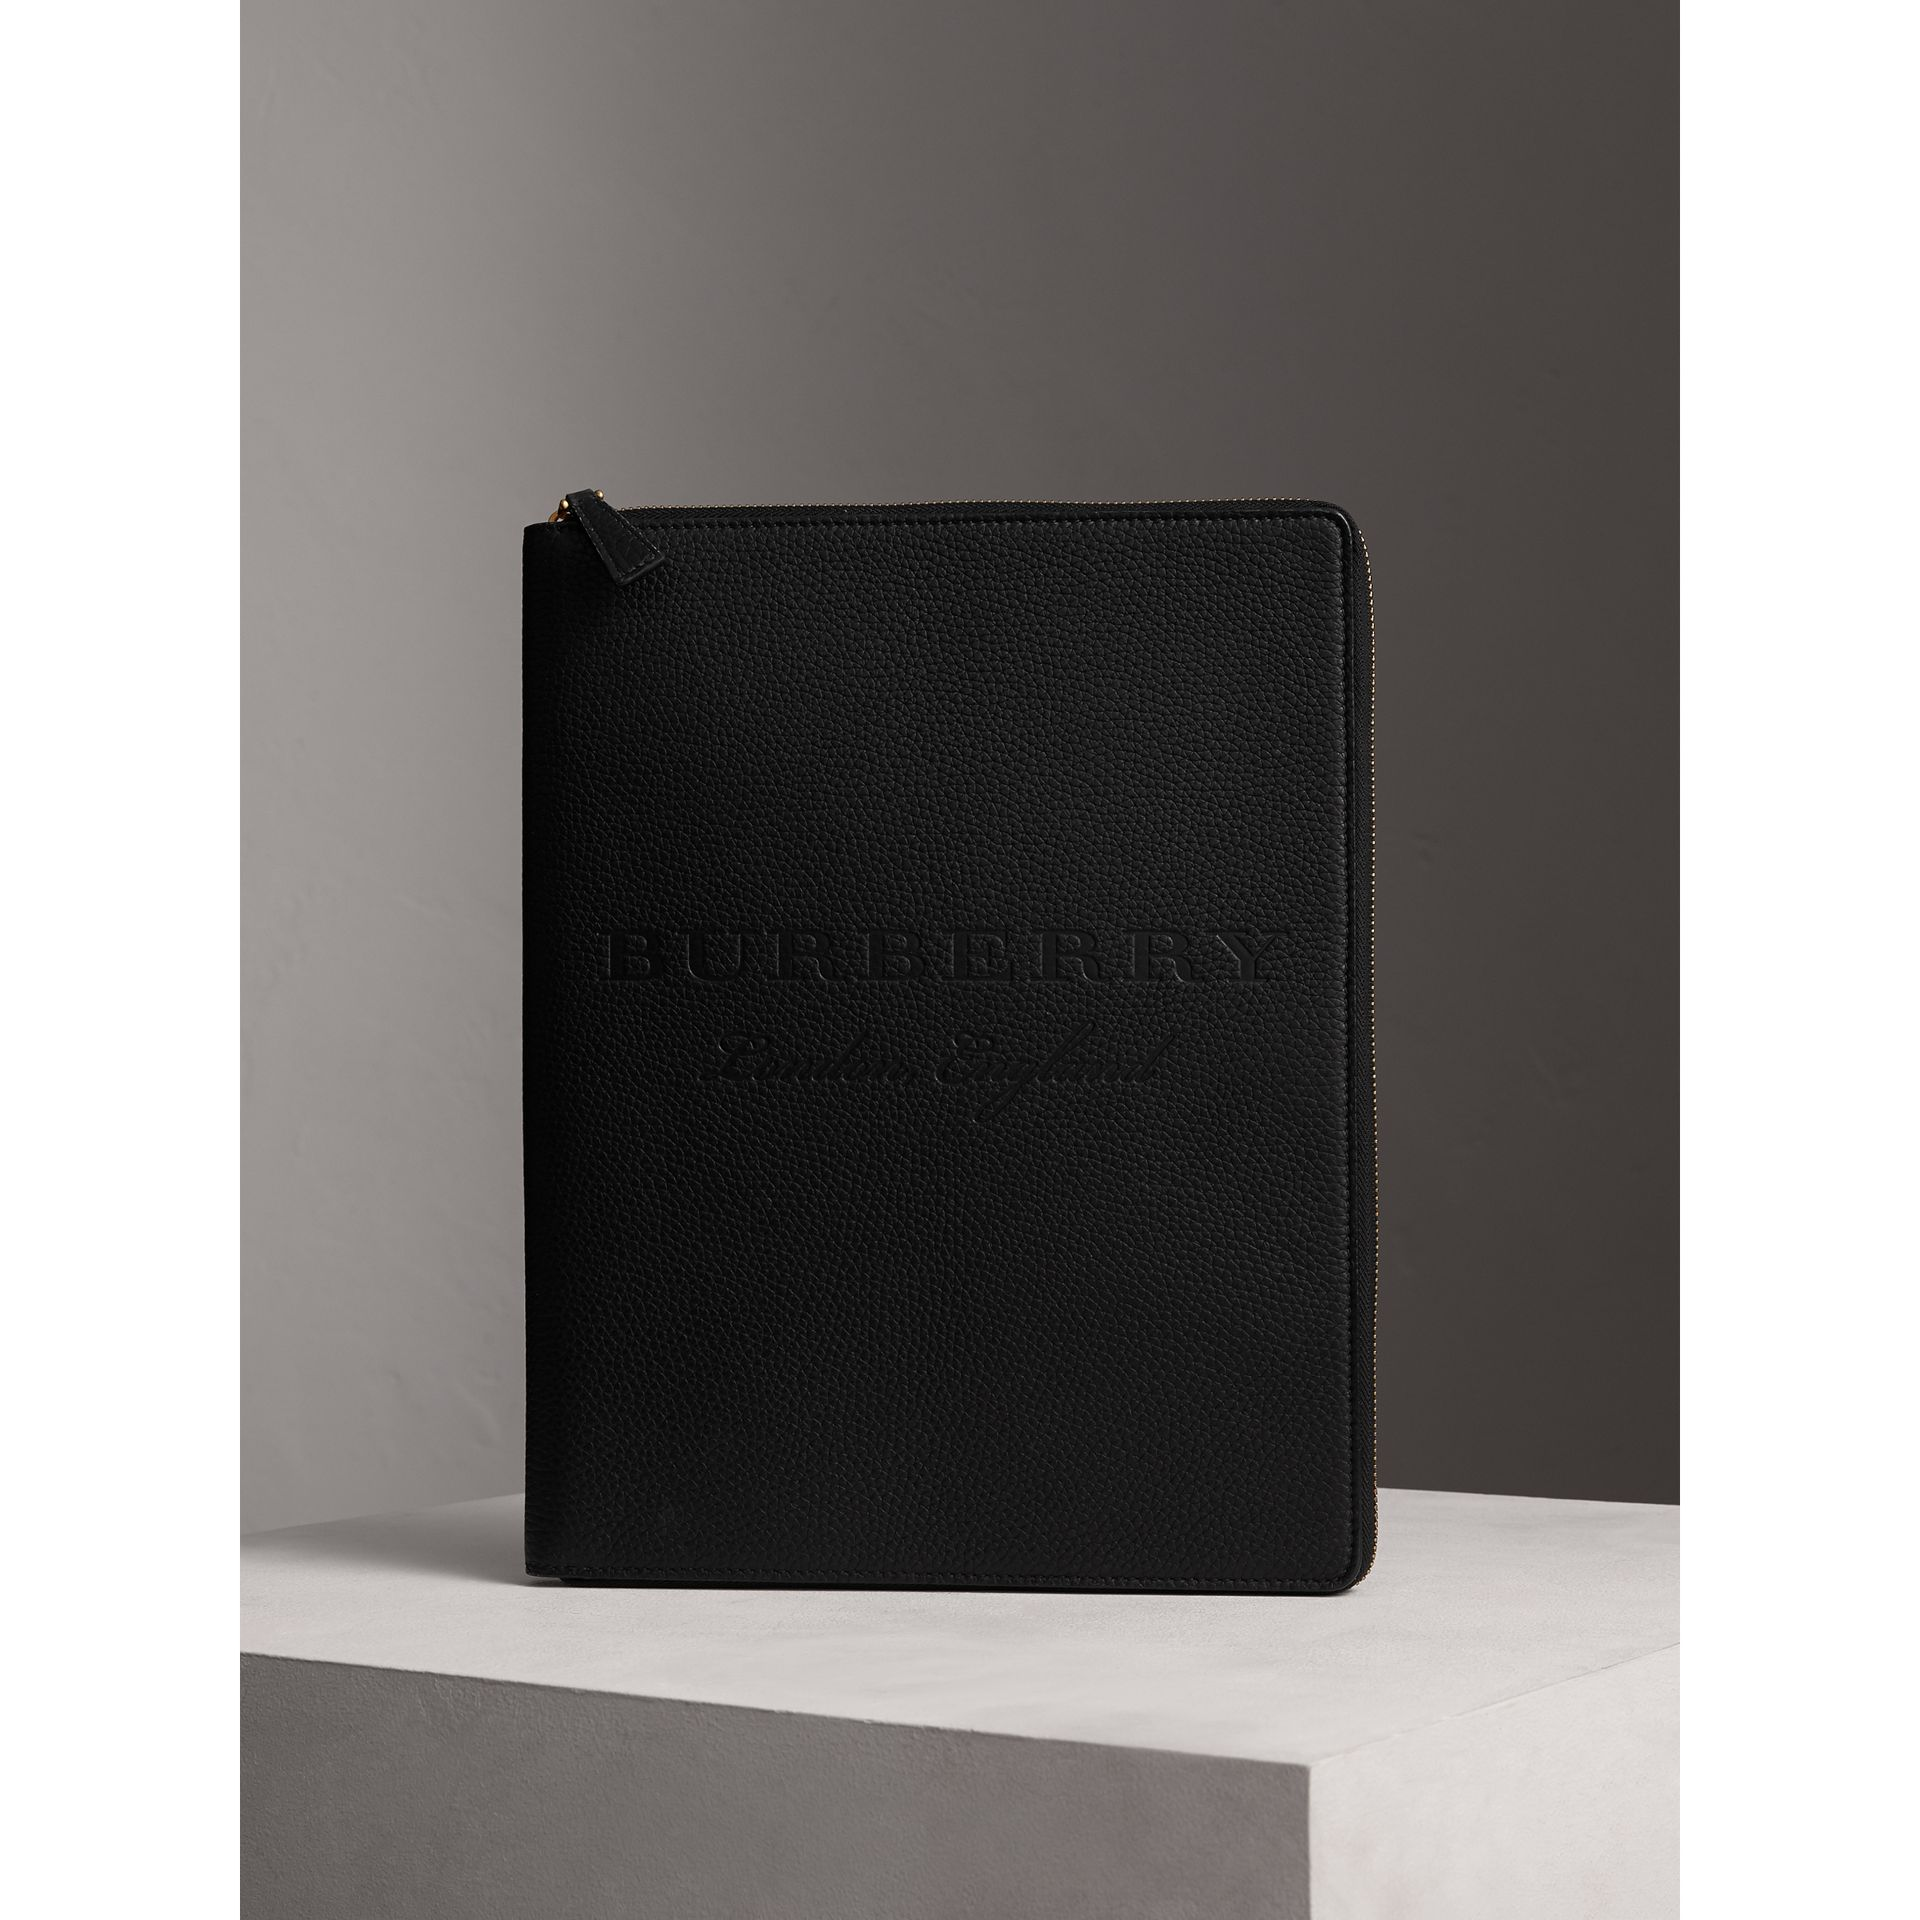 Embossed Grainy Leather Ziparound A4 Notebook Case in Black | Burberry Australia - gallery image 4